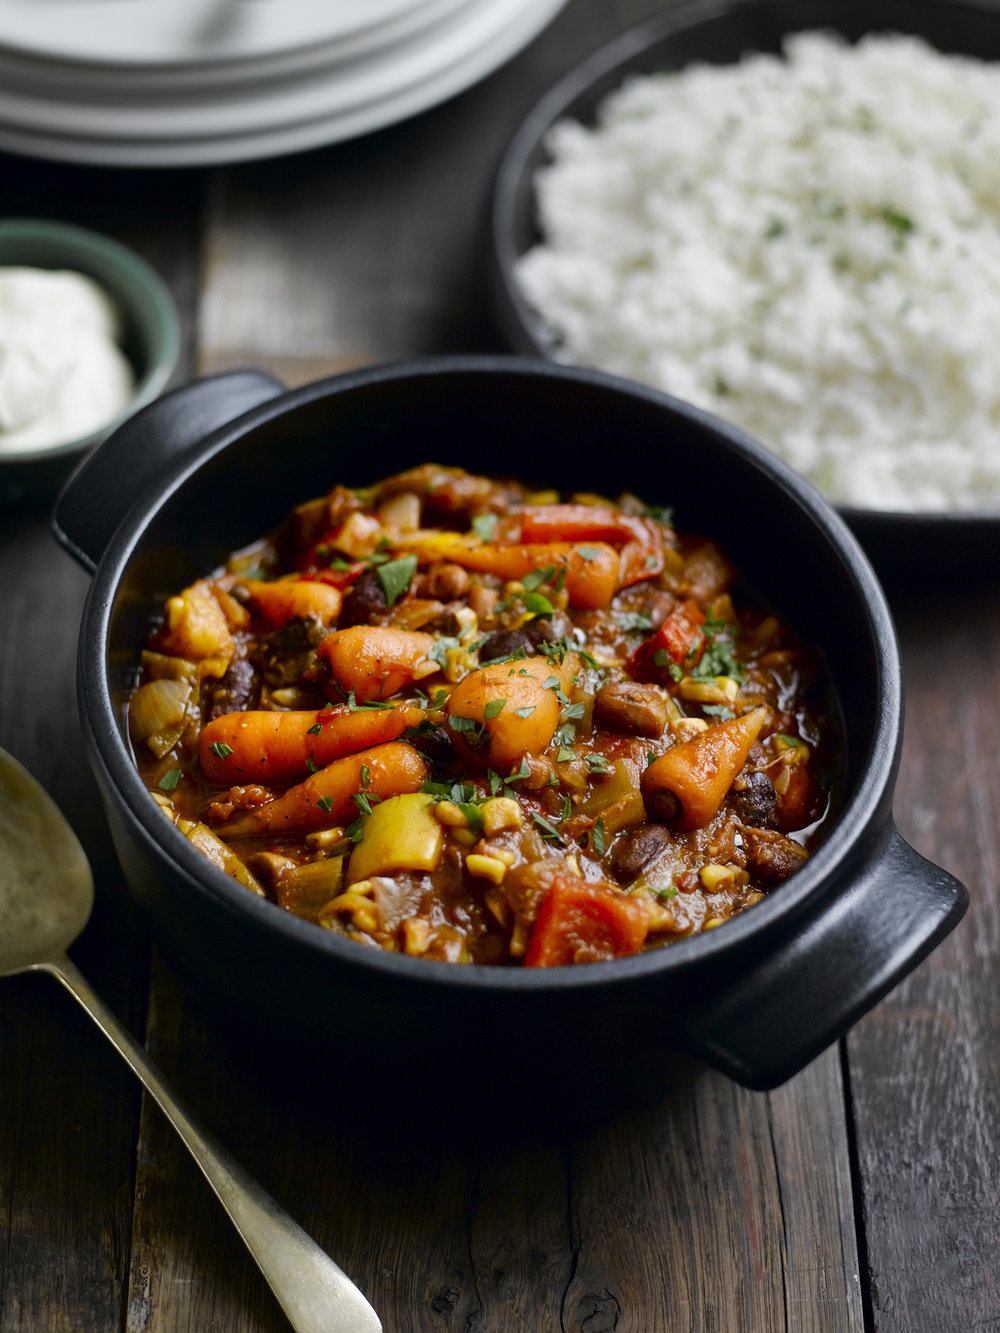 Chantenay vegetable chilli - This warming vegan chilli is so easy to make. Serve it with rice and some coconut yoghurt for a great weeknight feast.